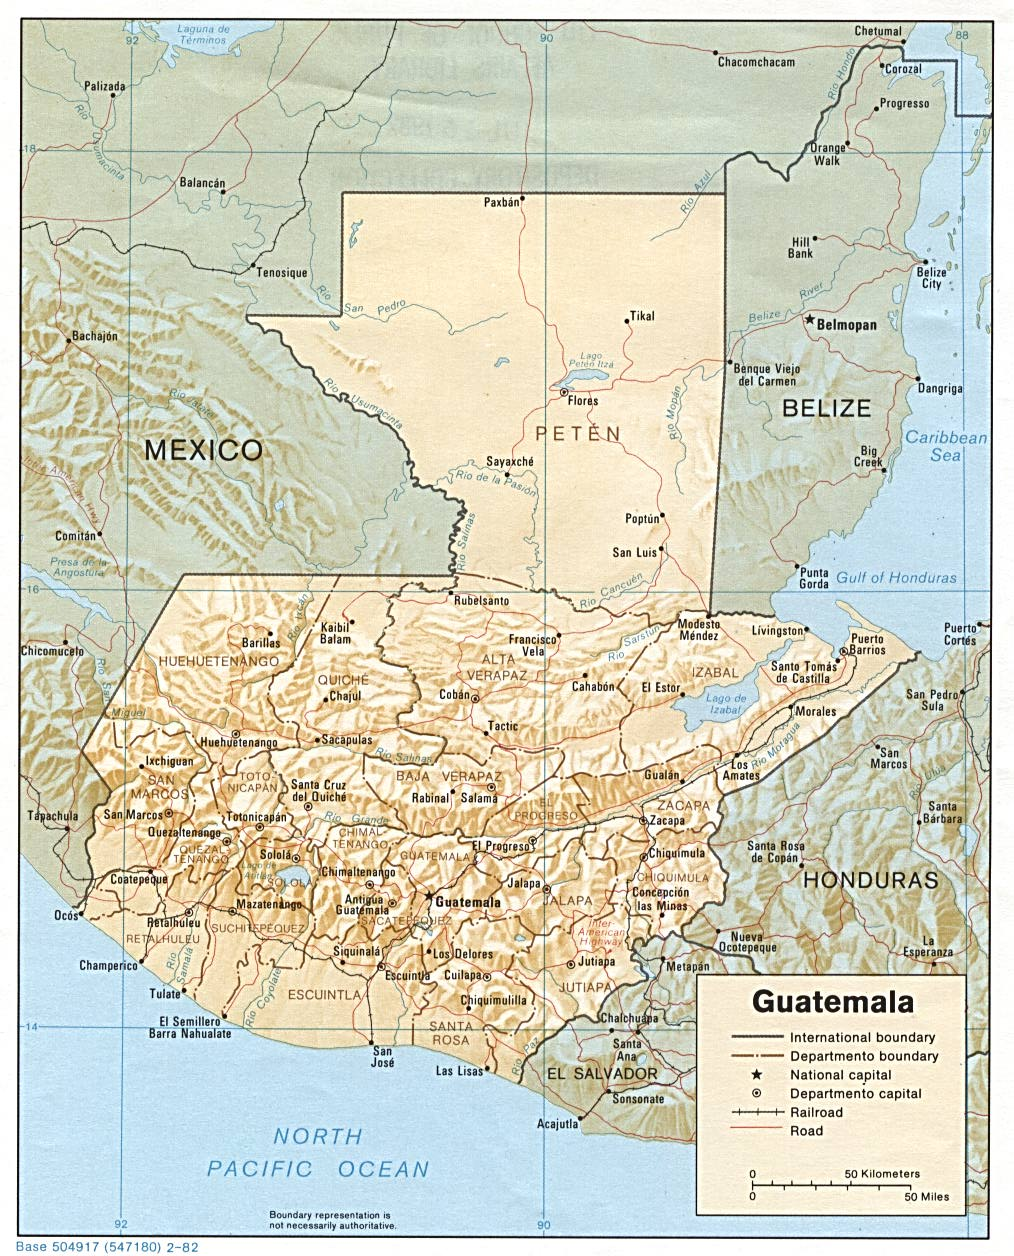 Mapa Relieve Sombreado de Guatemala